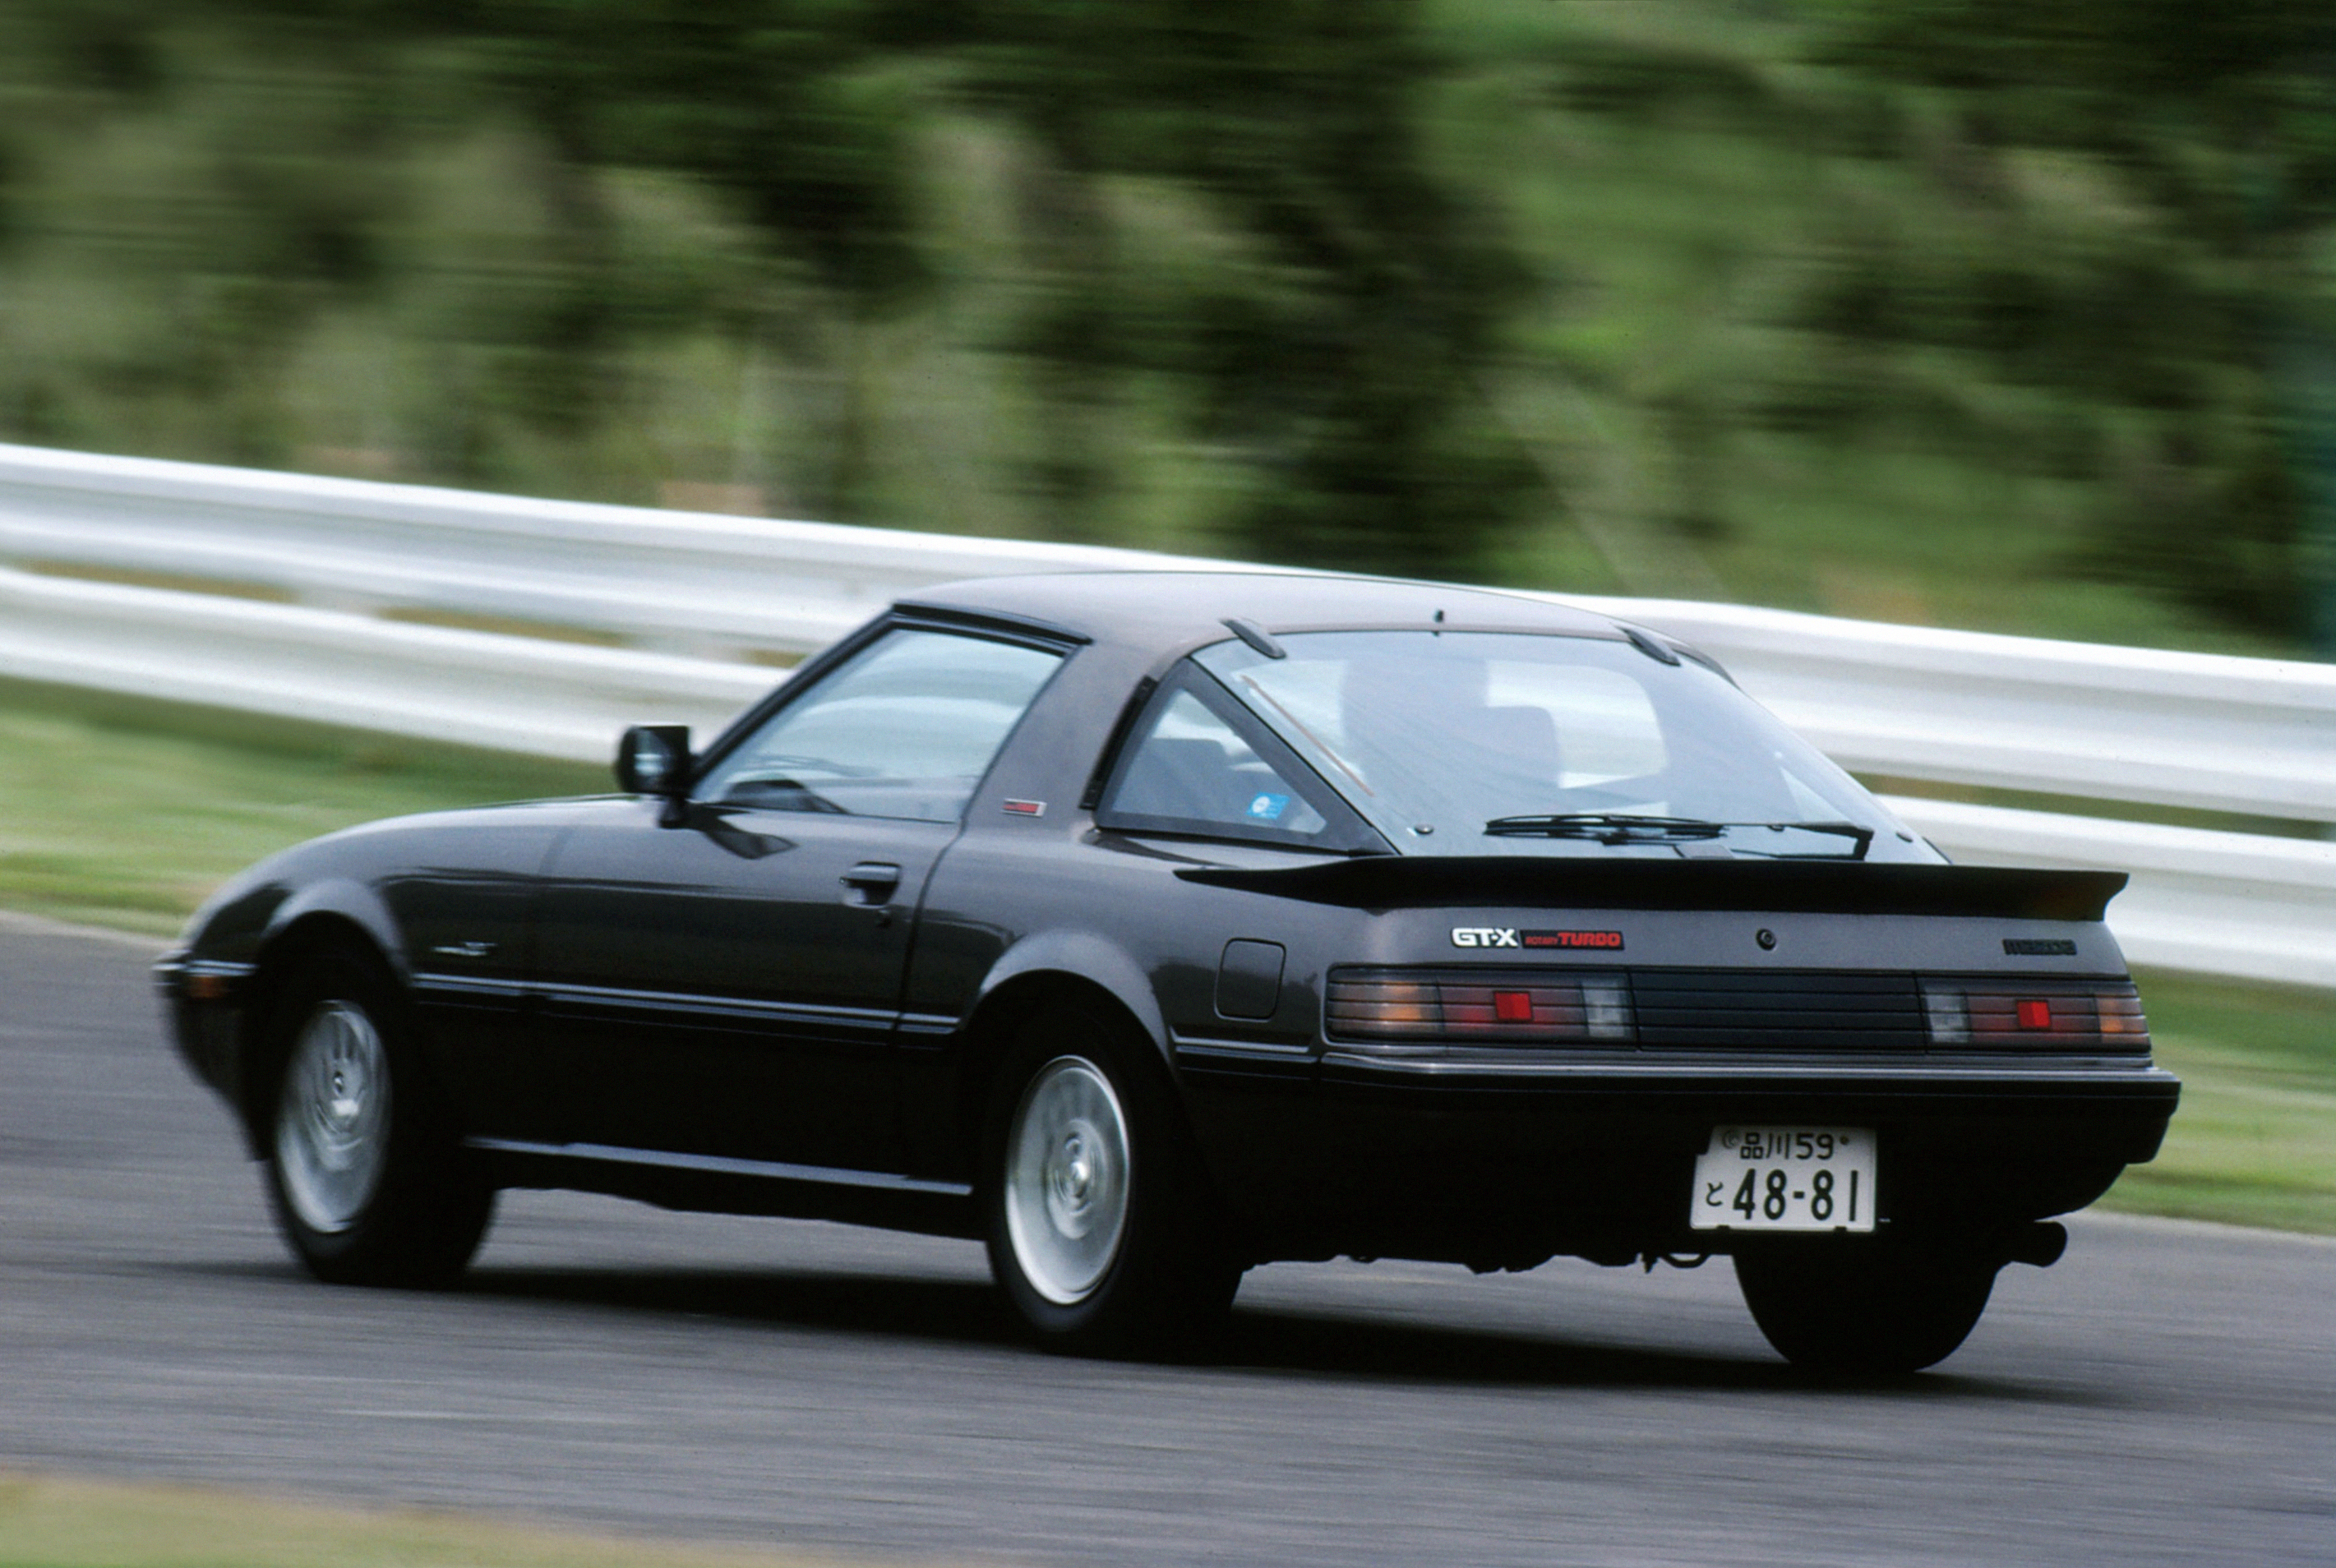 The Complete History Of The Mazda RX-7 - Garage Dreams